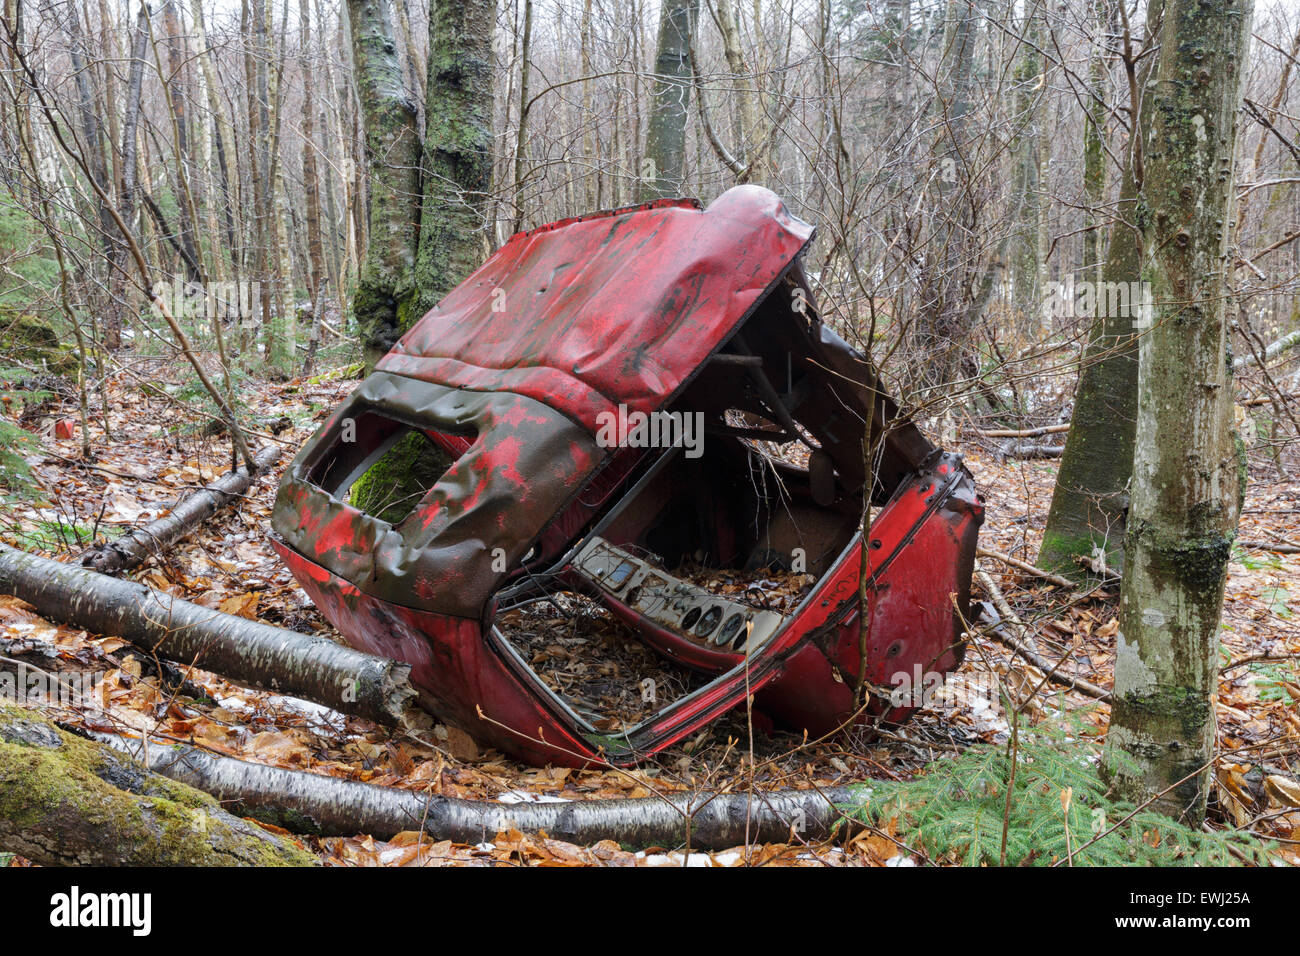 Abandoned truck in the Clay Brook drainage of Easton, New Hampshire USA during the spring months - Stock Image